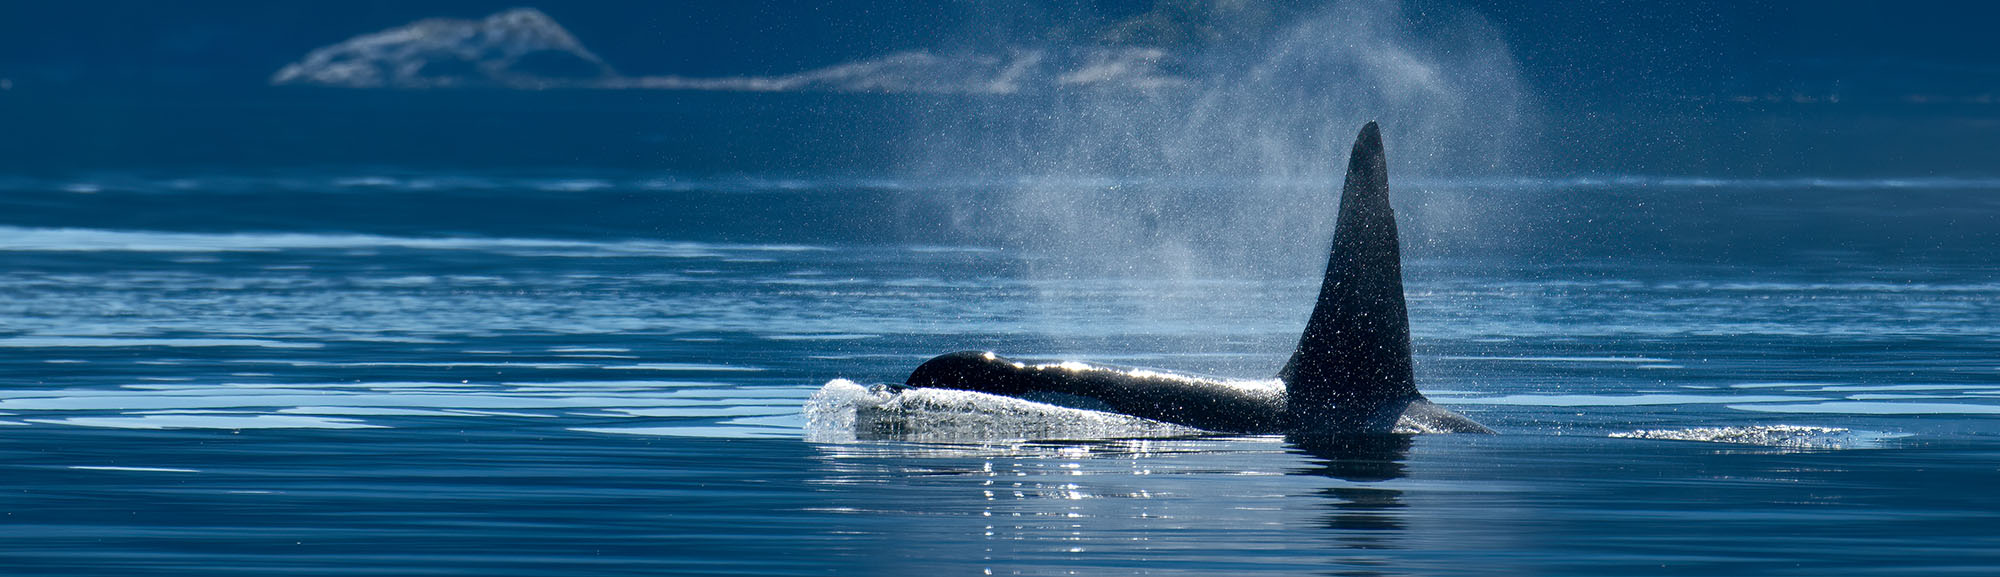 Northern resident orca whales (Orcinus orca), near Campbell River, Vancouver Island, BC Canada